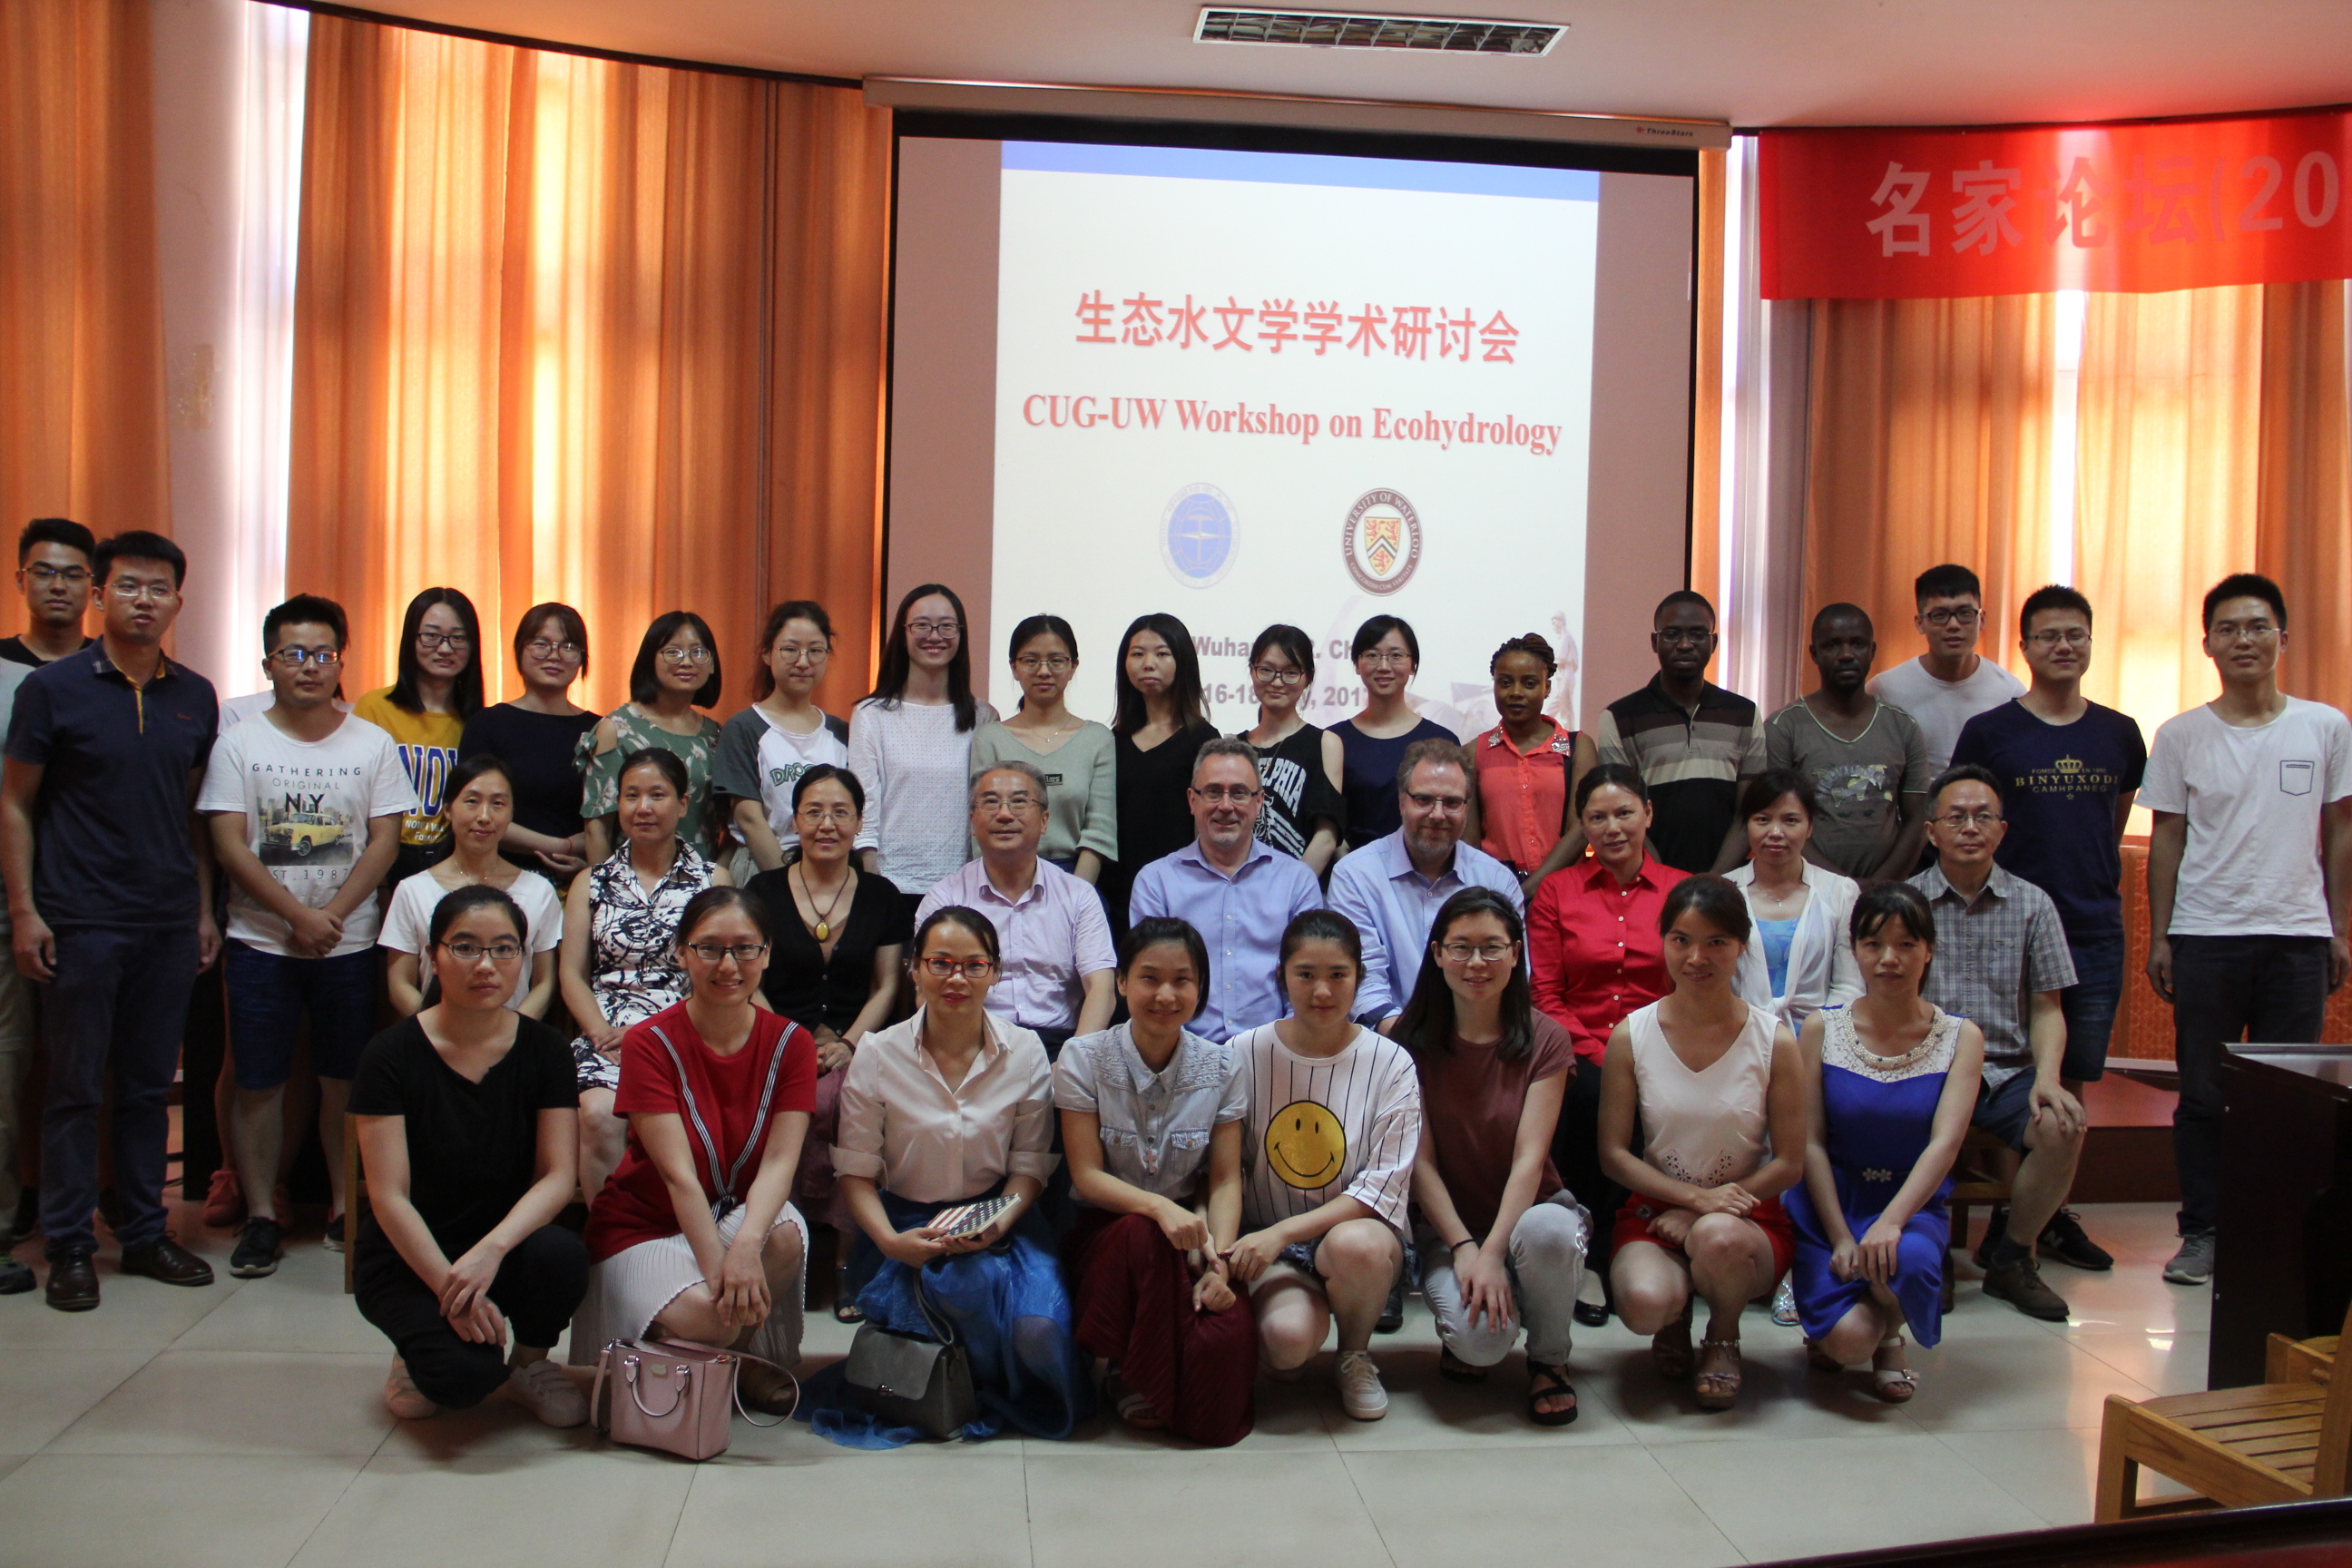 Attendees of the CUG-UW Workshop on Ecohydrology in Wuhan, China